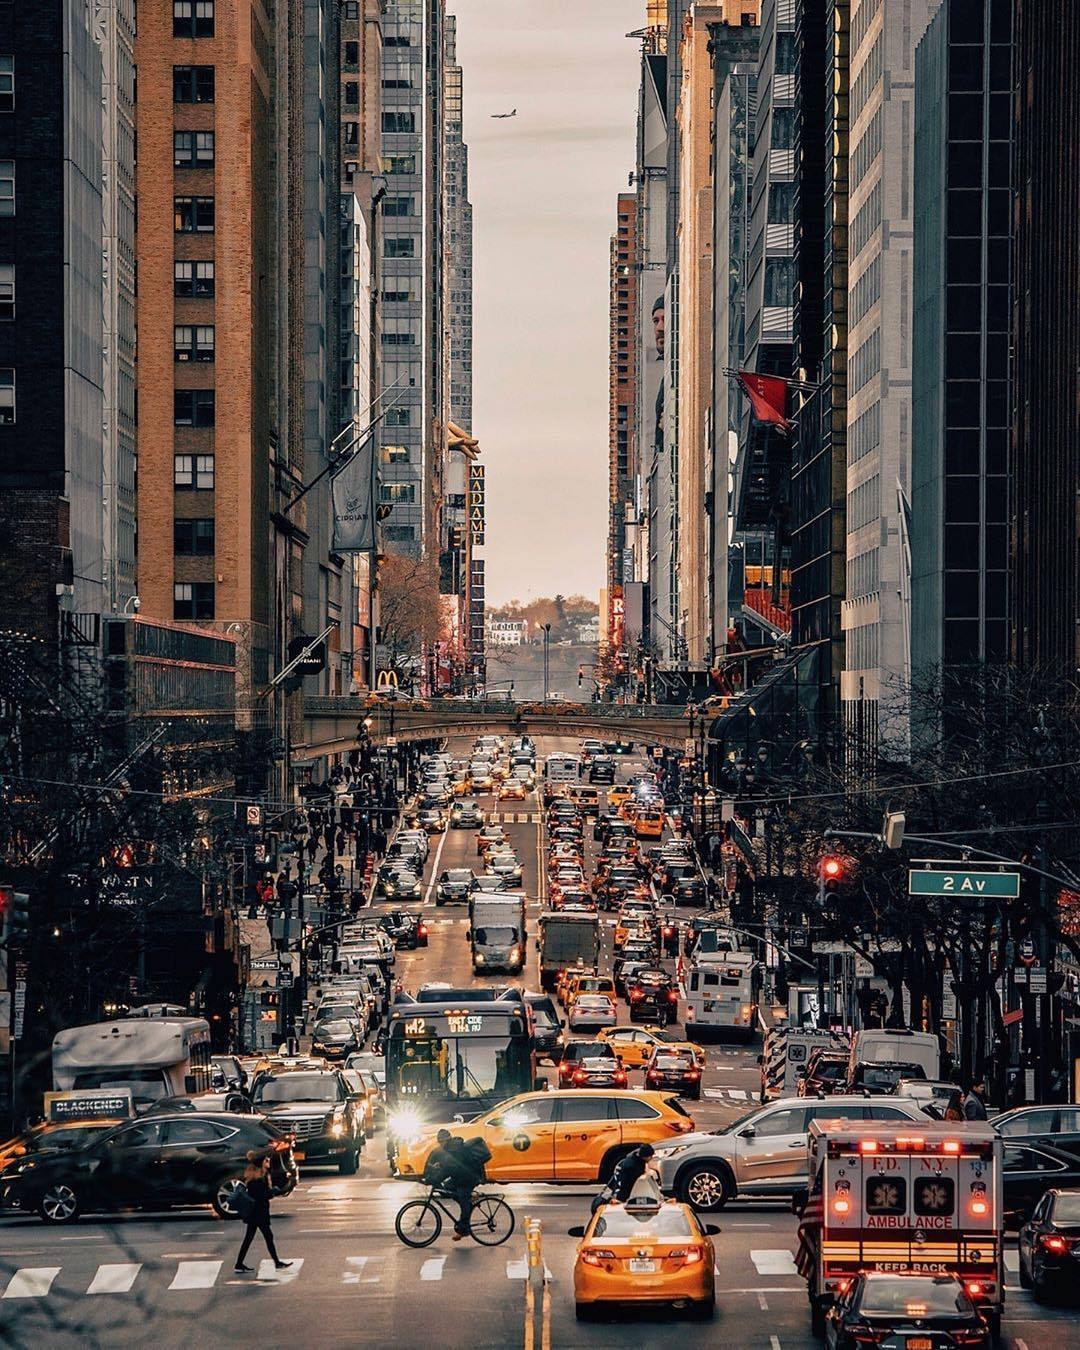 Manhattan Streets: Viewing NYC On Instagram, February 11th, 2019